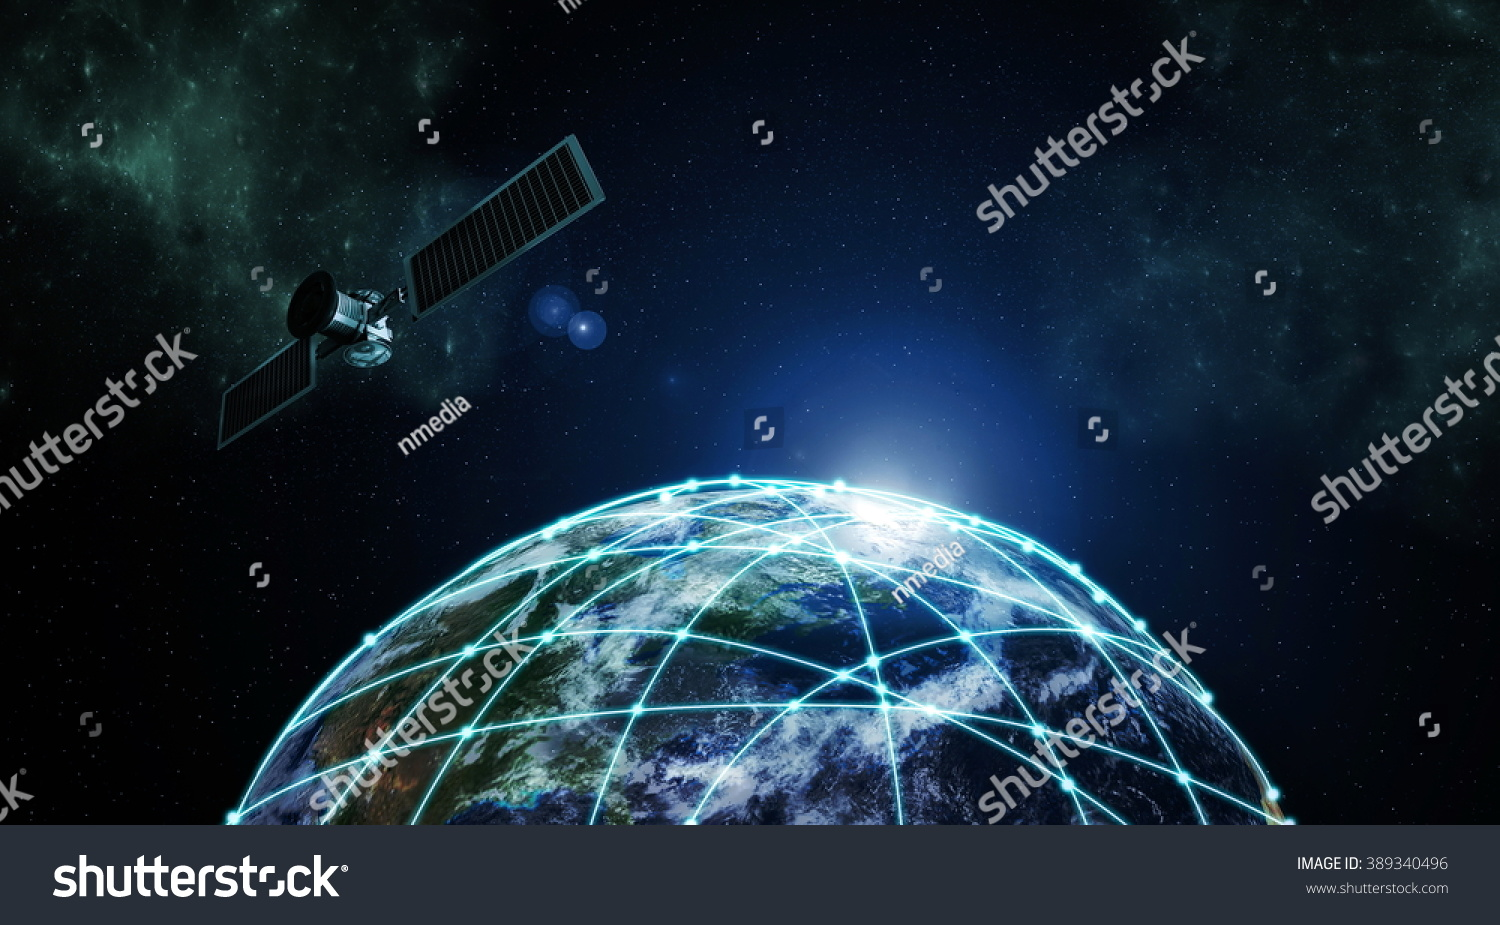 Internet information technology image outer space internet information technology image outer space 389340496 shutterstock voltagebd Image collections